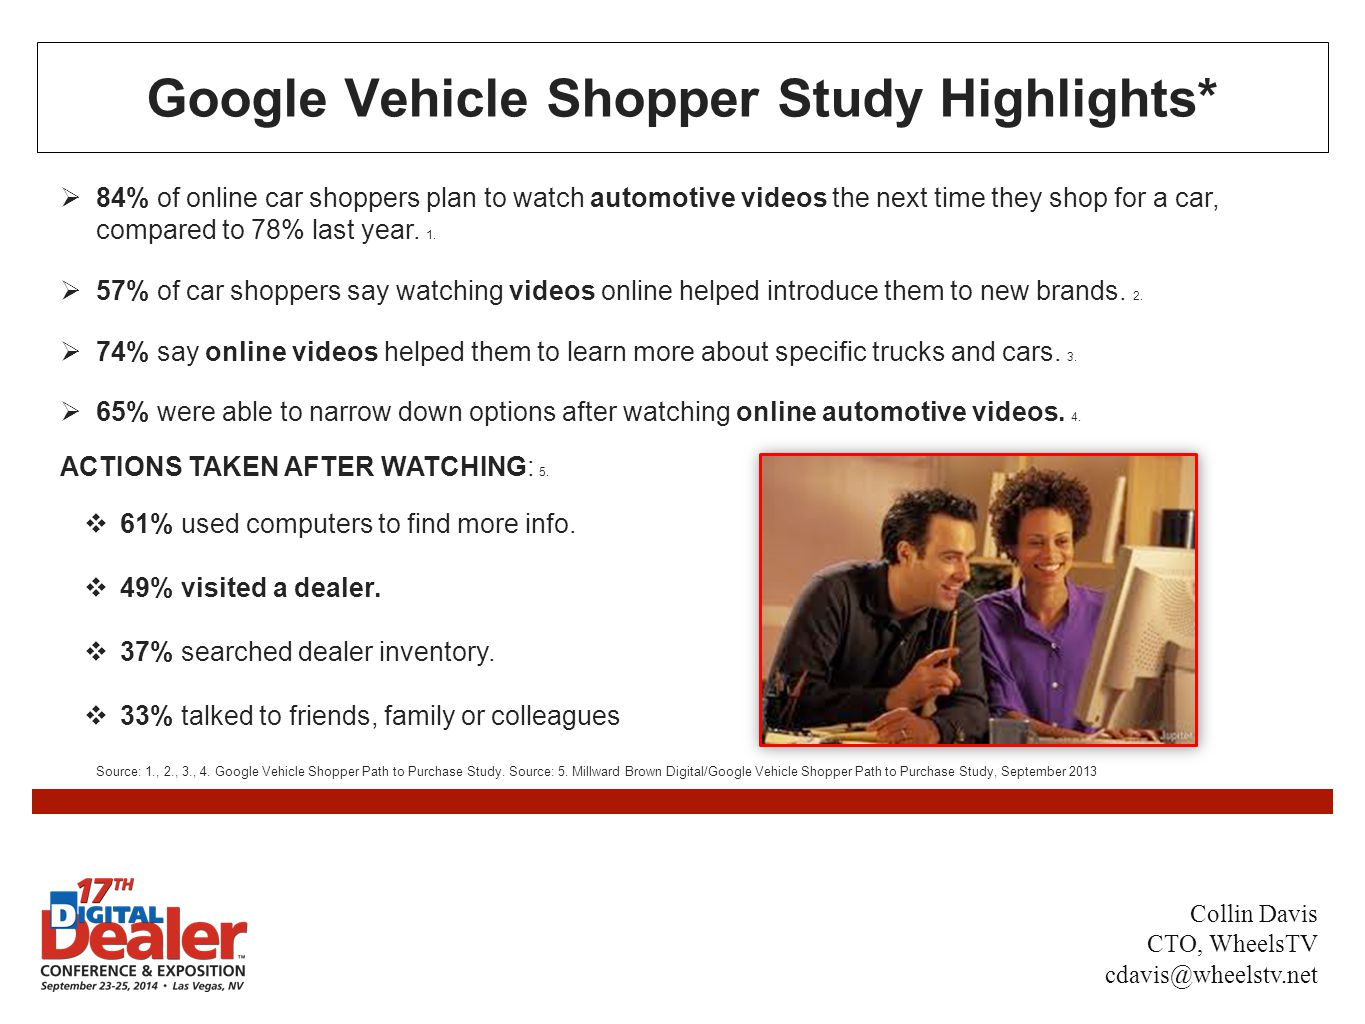 Google Vehicle Shopper Study Highlights*  84% of online car shoppers plan to watch automotive videos the next time they shop for a car, compared to 78% last year.